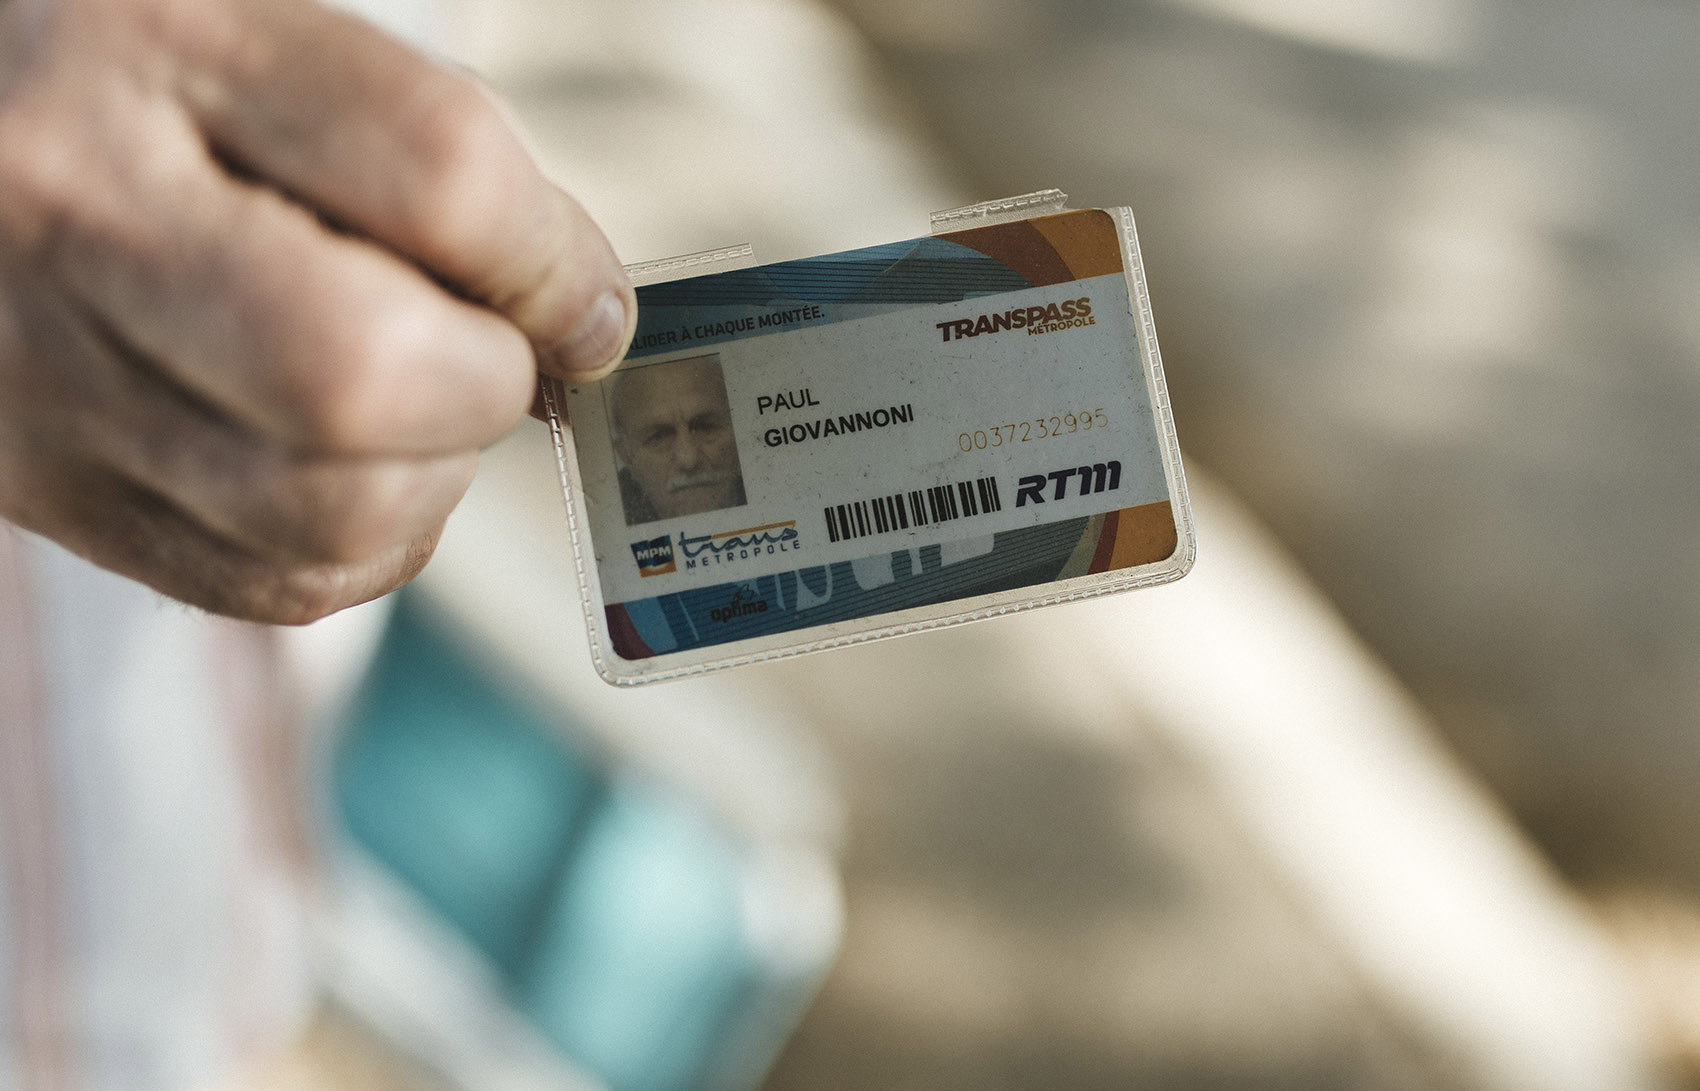 Paul Giovanonni shows his Transpass Métropole, a public transport ticket in Marseille